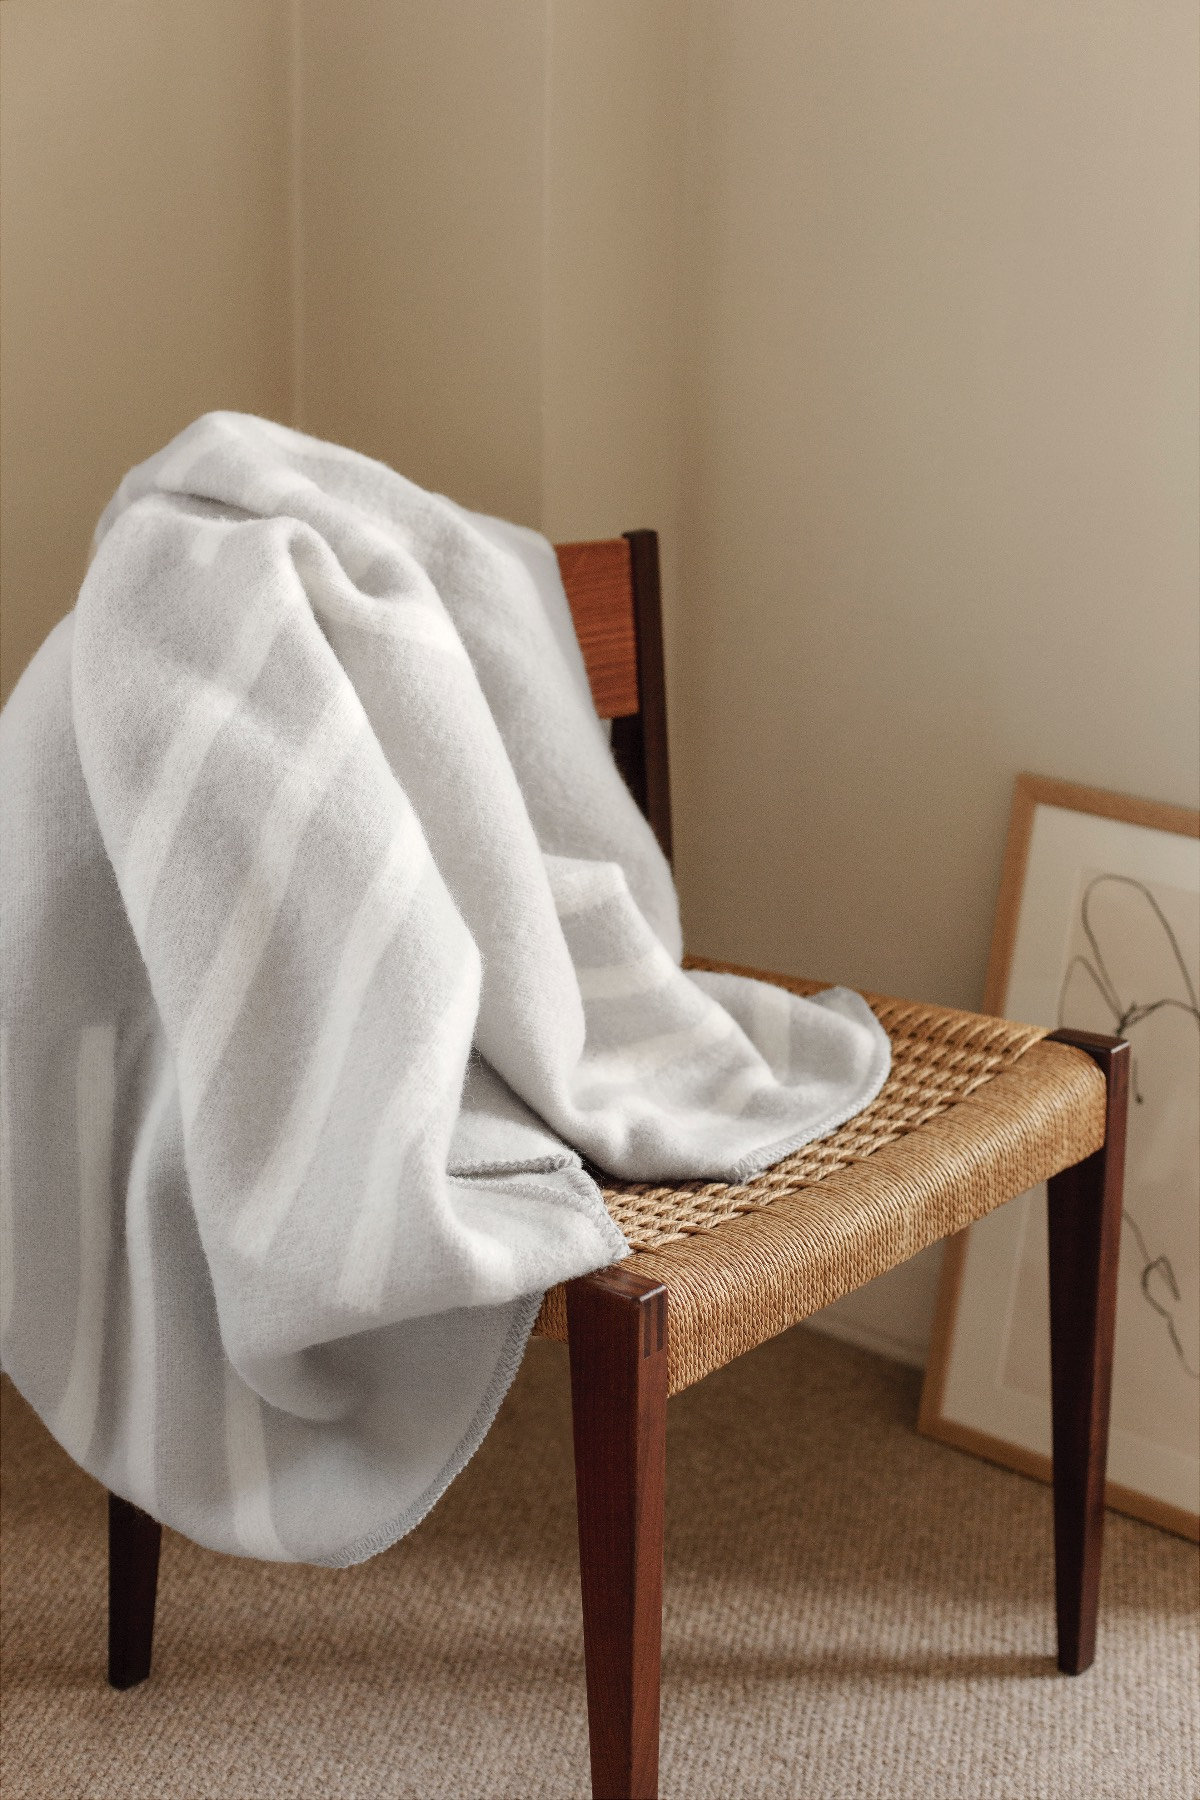 Wool blanket Classic in Cream and Gray hanging on a chair.